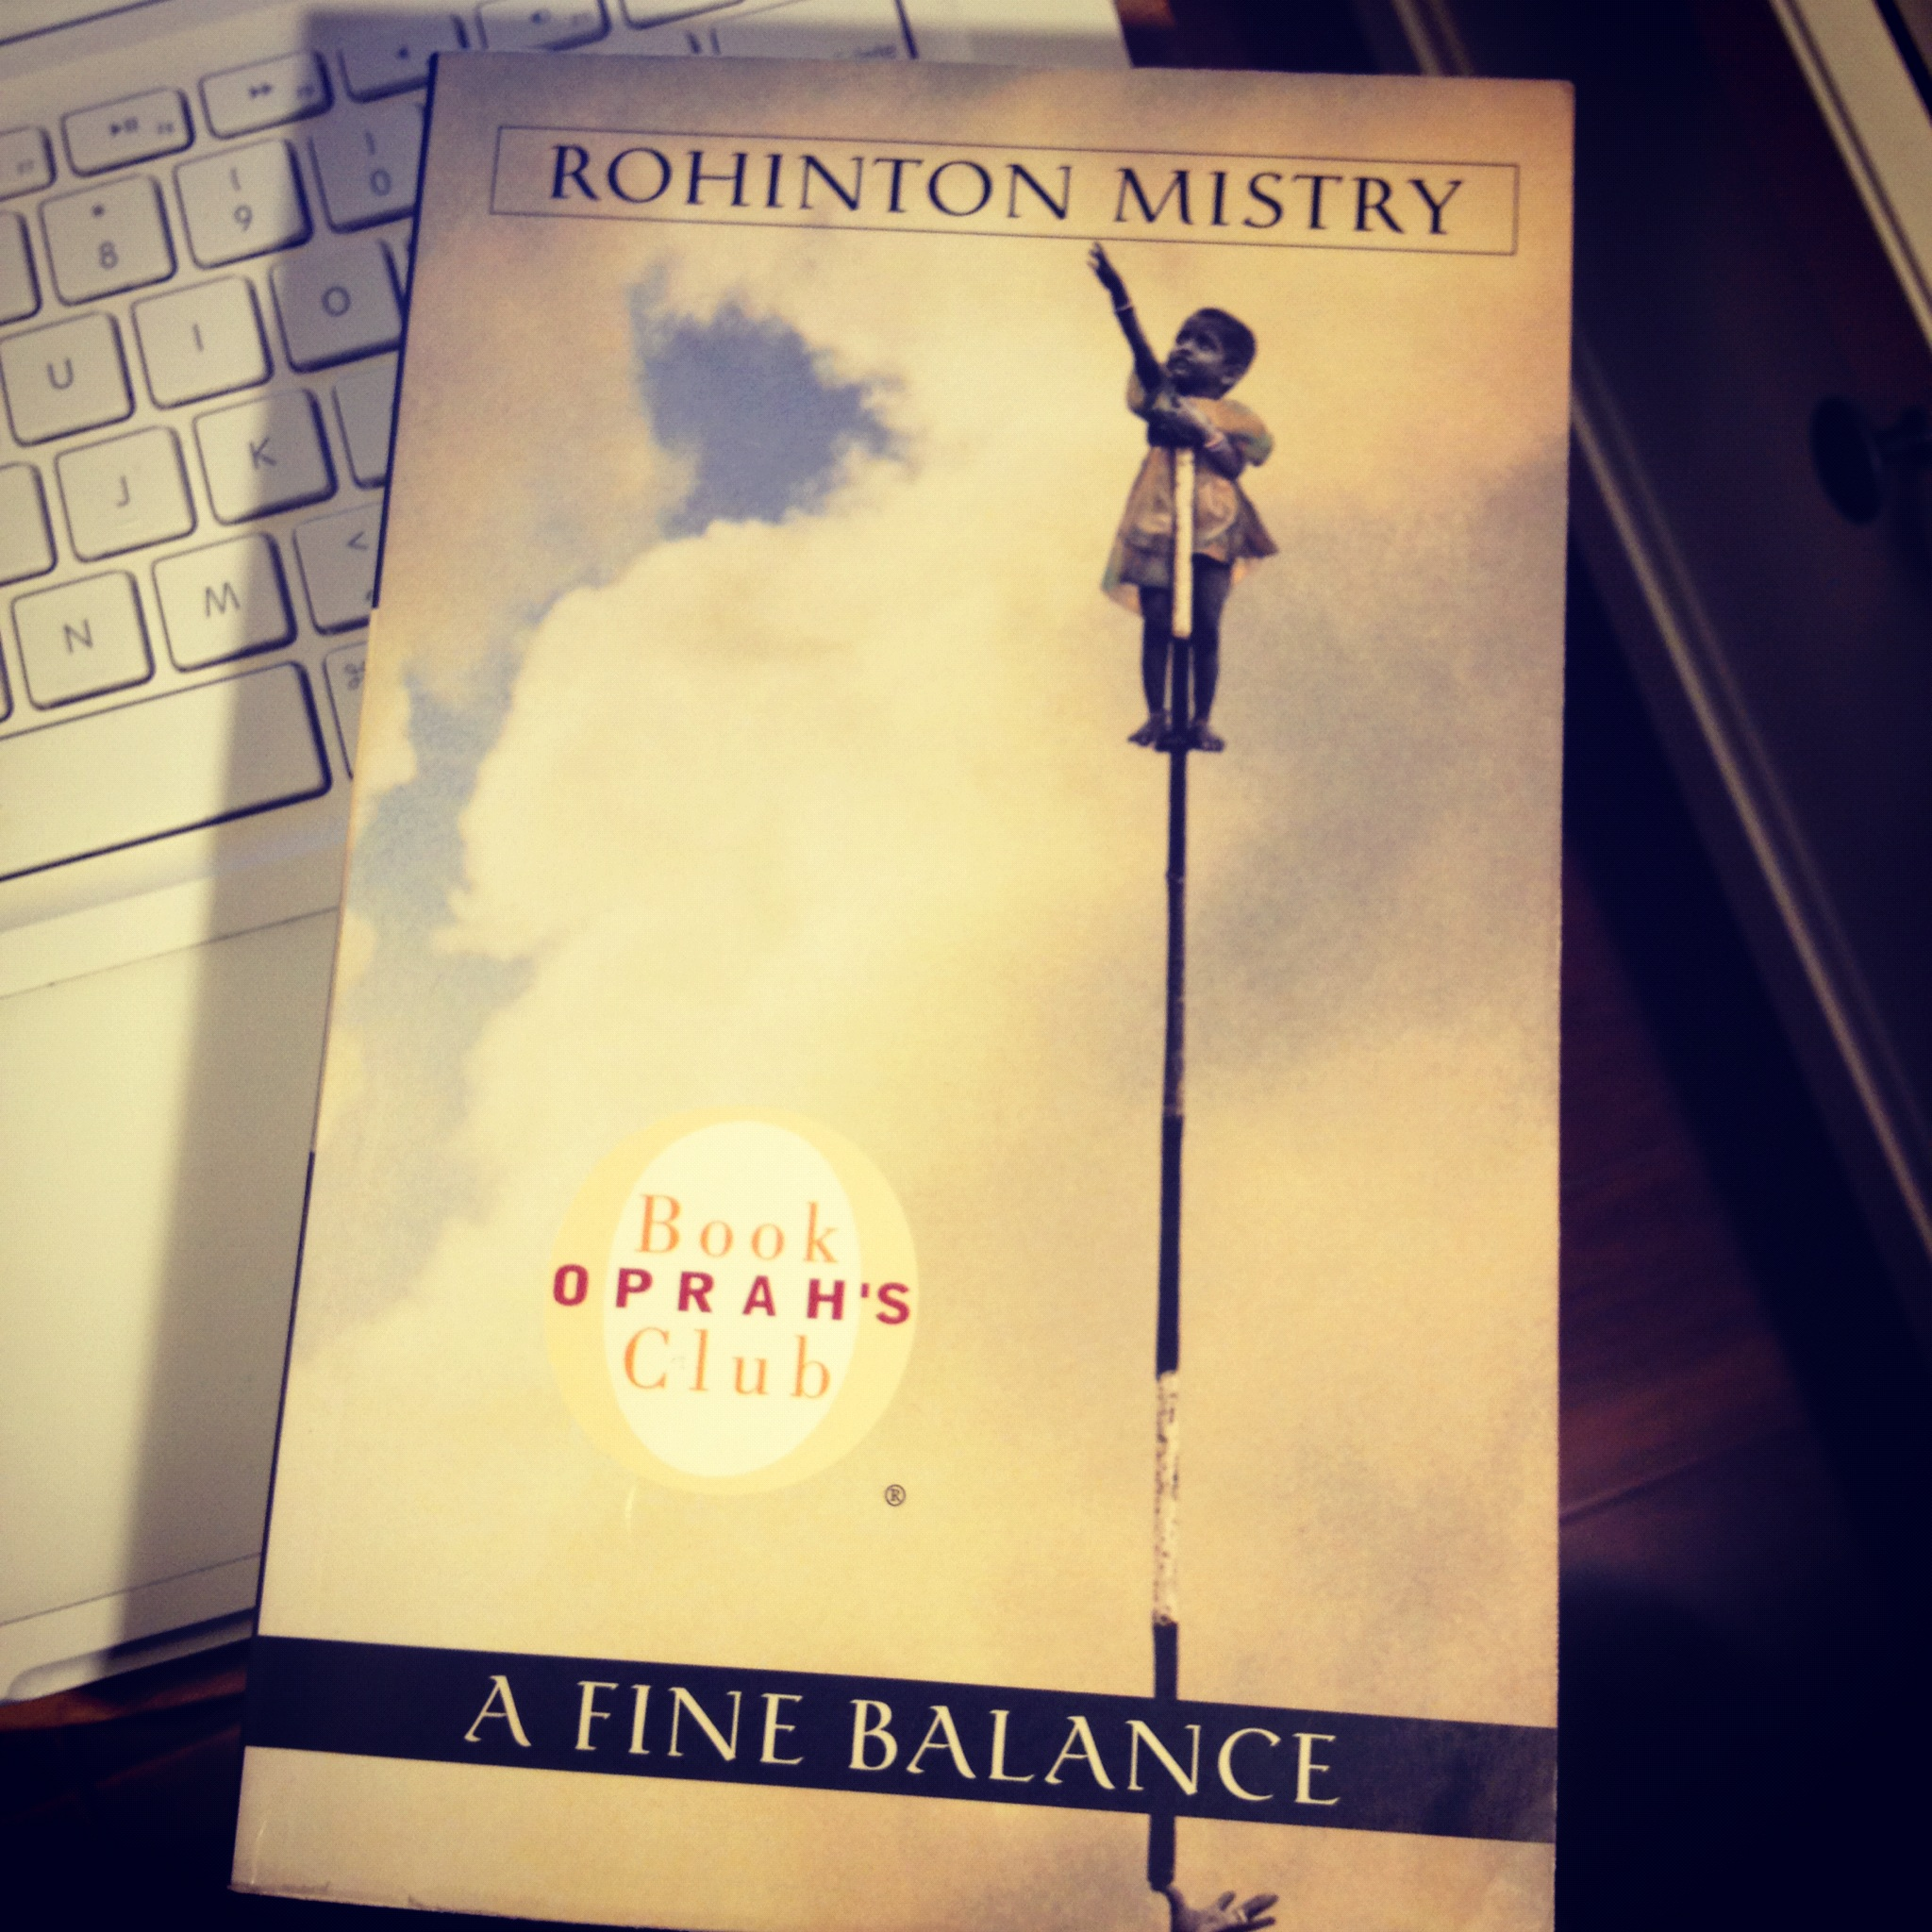 a fine balance rohinton mistry A fine balance about the book a fine balance by rohinton mistry  rohinton mistry creates unforgettable characters and vast social panoramas on the scale of dickens and victor hugo, and he shares, as well, their remarkable generosity of spirit.